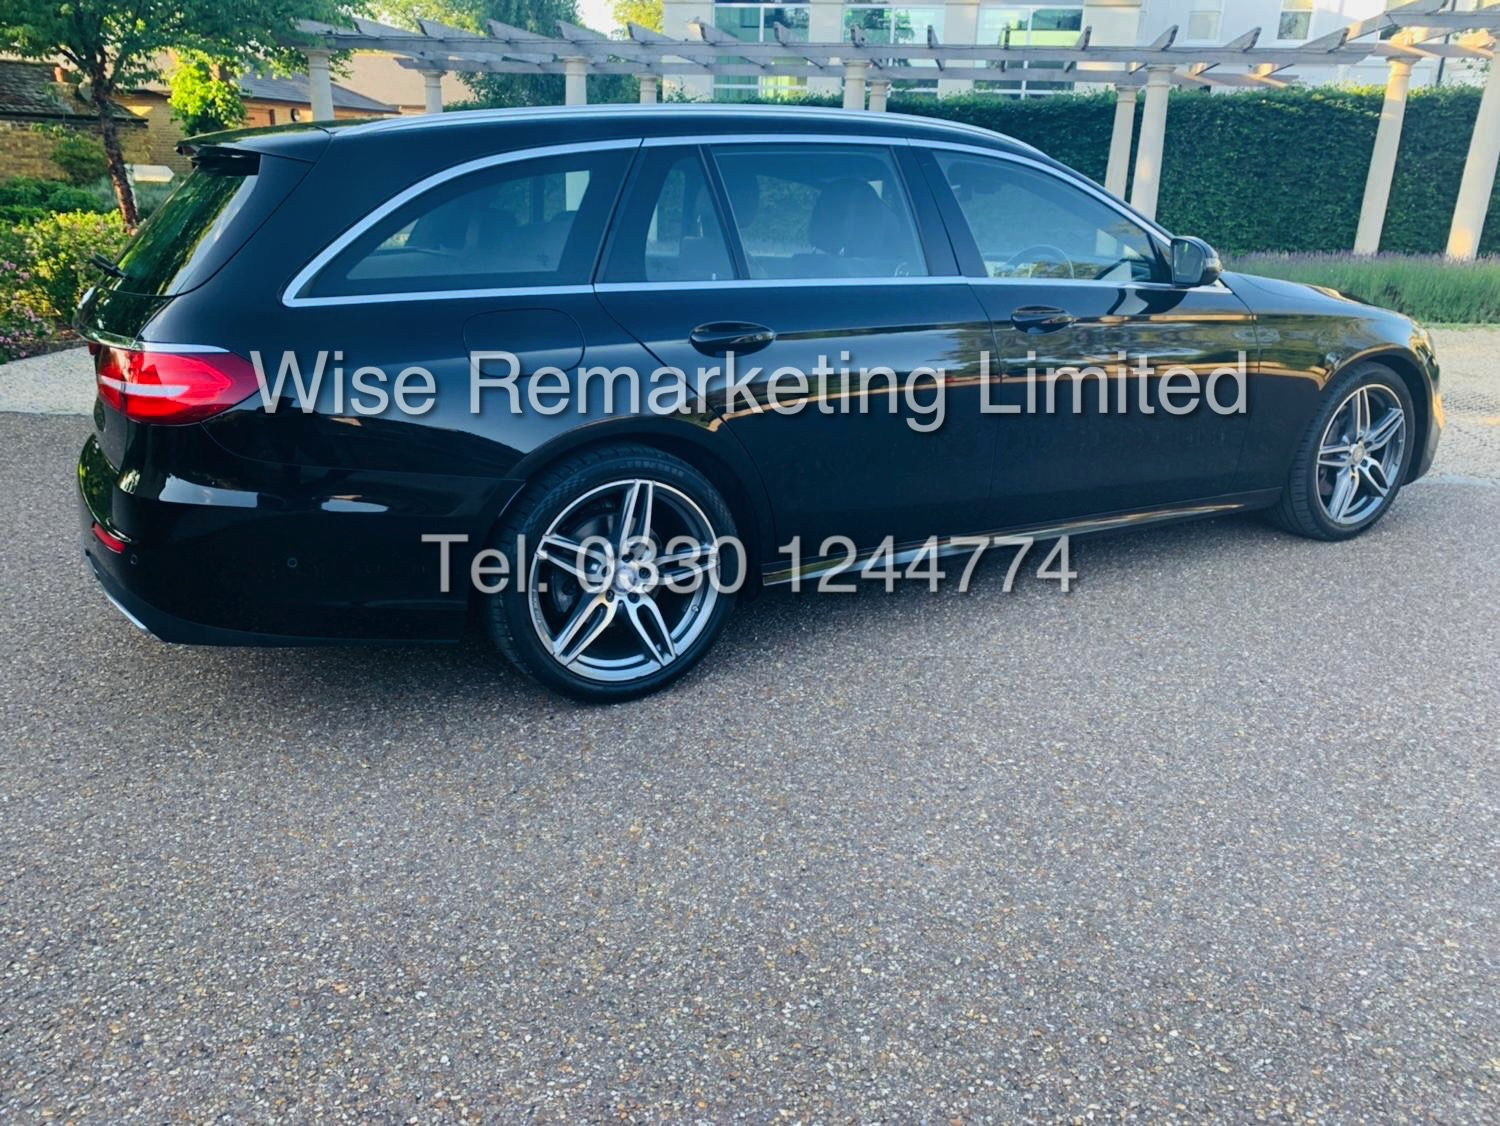 MERCEDES E CLASS ESTATE E220D AMG LINE 2017 / 9G -TRONIC / *LOW MILES* / 1 OWNER - Image 11 of 42